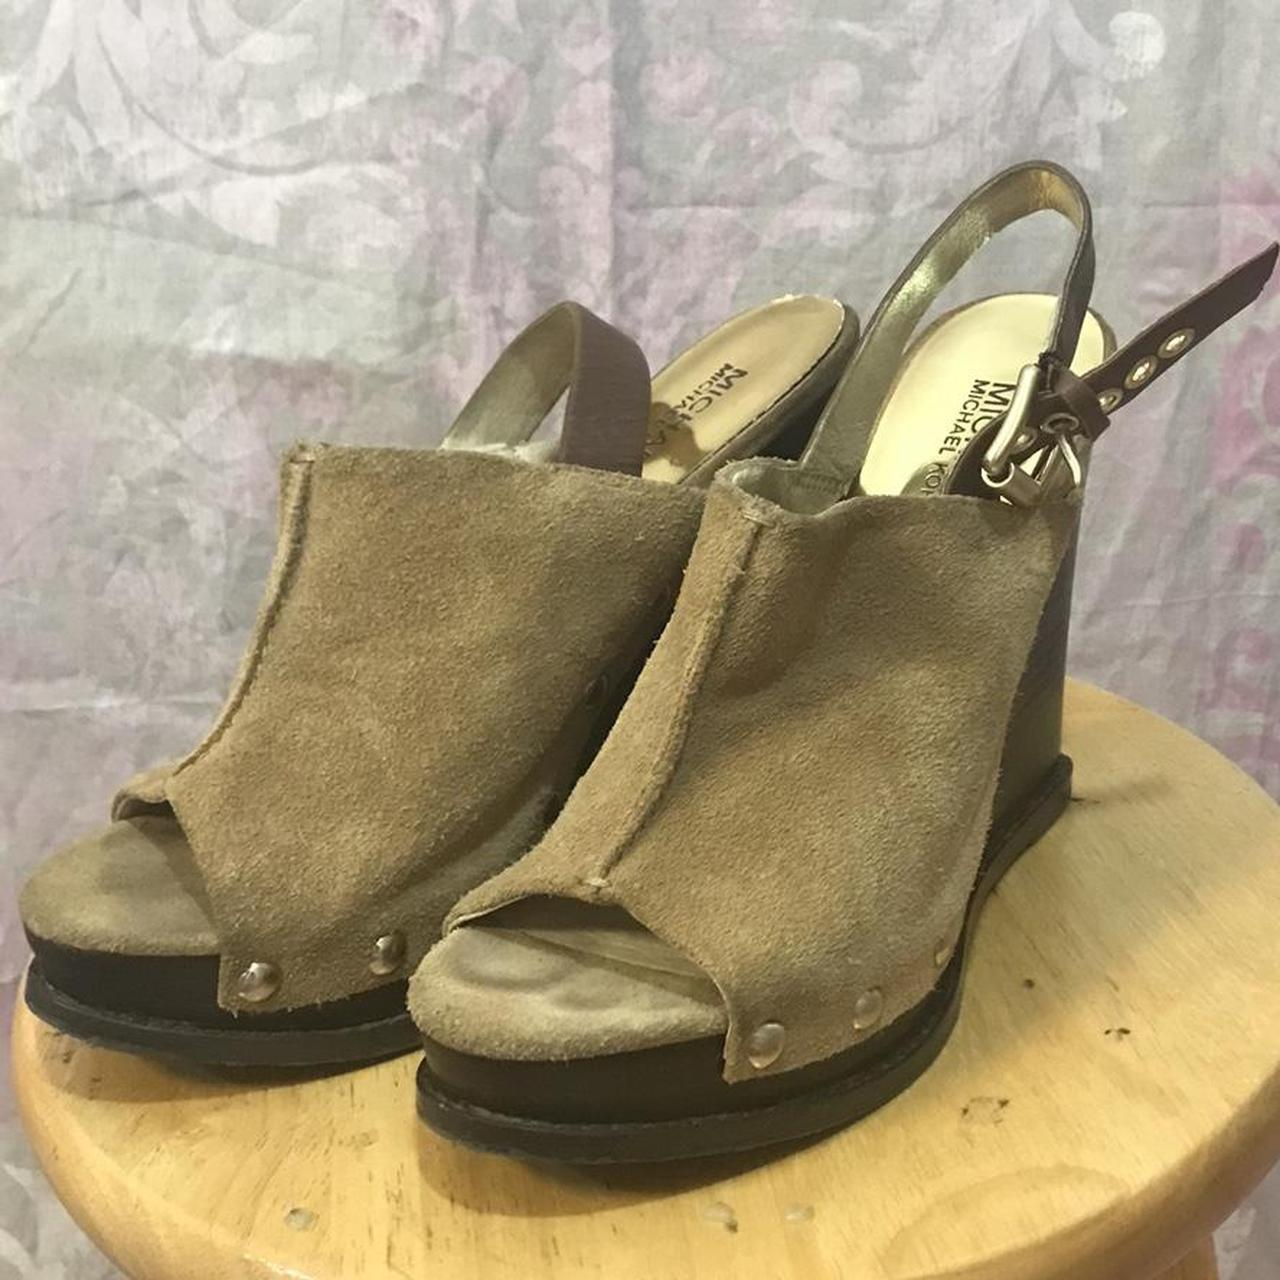 Product Image 1 - Michael Kors wedges Size 7.5 Leather upper  #michaelkors